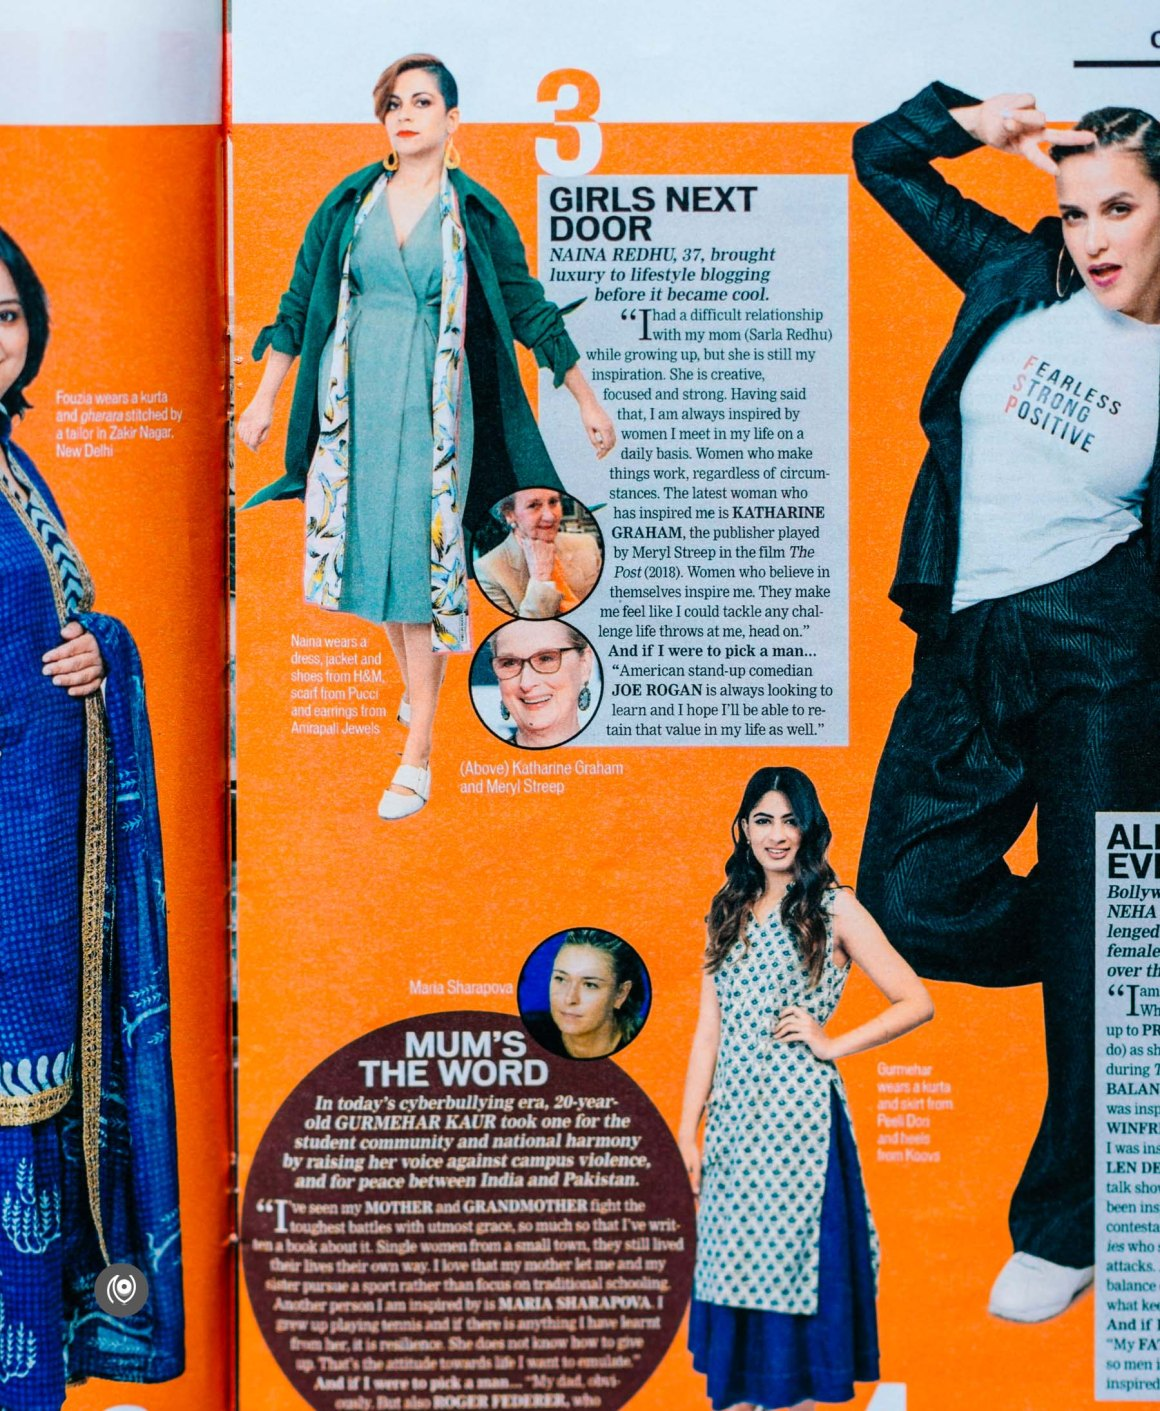 Naina Redhu, #WomenRuleOkay, #HTBrunch, #NainaOnTheCover, Samreen Tungekar, Jamal Shaikh, Women's Day, Naina On the cover, Women Tule Okay, Hindustan Times Brunch, Lubna Salim, Inspirational Women, Naina.co, Naina, Lifestyle Blogger, Luxury Blogger, Photography Blogger, Photo Blogger, Lifestyle Photographer, Luxury Photographer, Professional Photographer, Lifestyle Influencer, Luxury Influencer, Photography Influencer, Photo Influencer